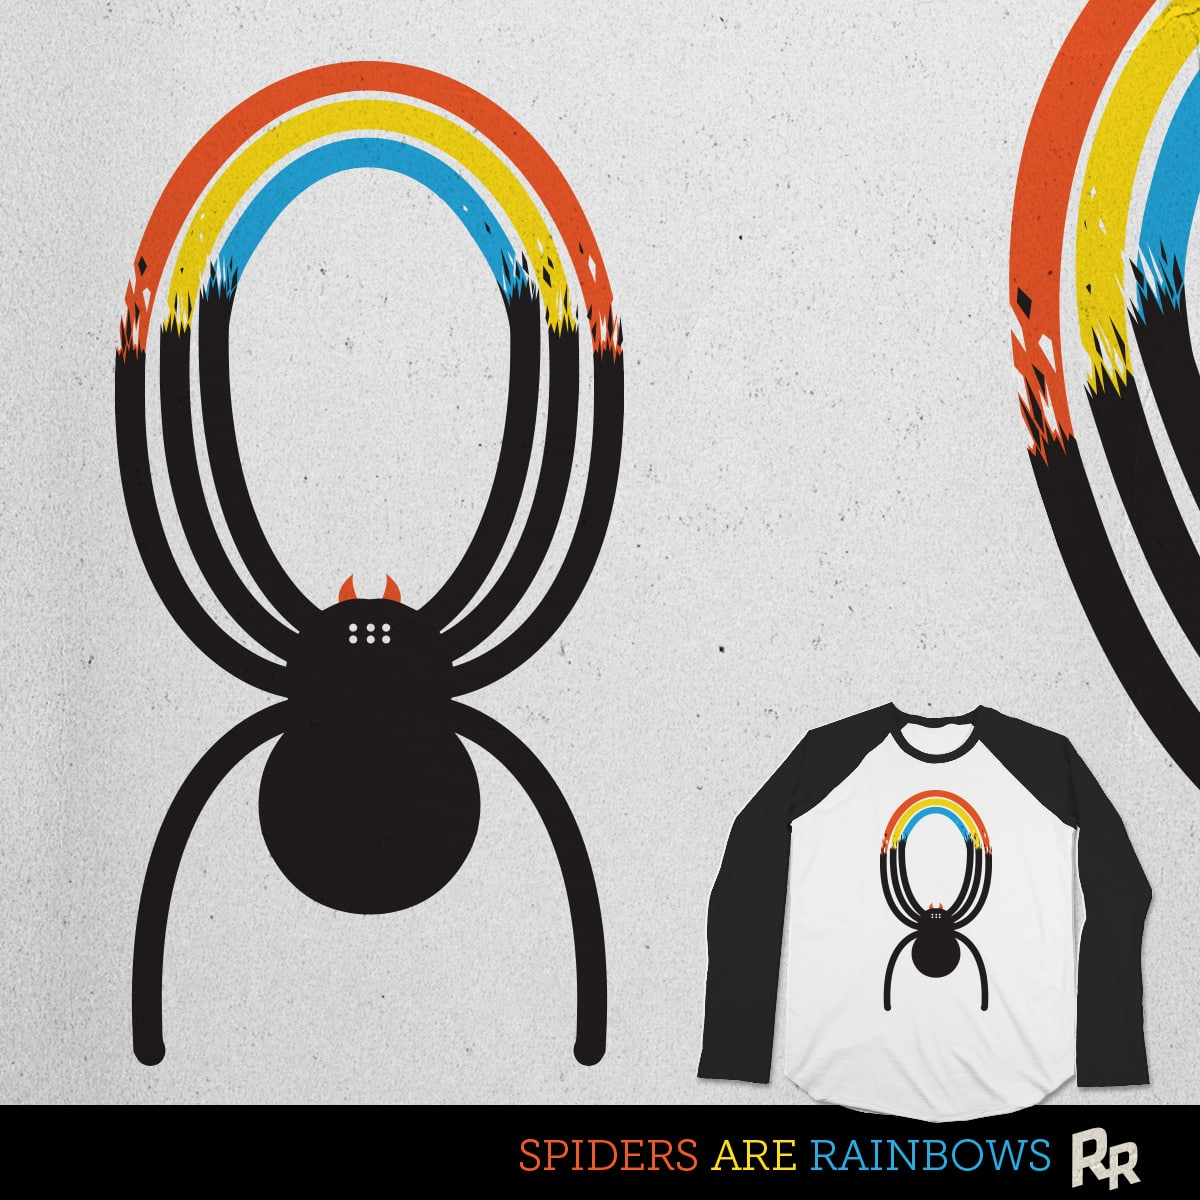 Spiders Are Rainbows by Ryder on Threadless